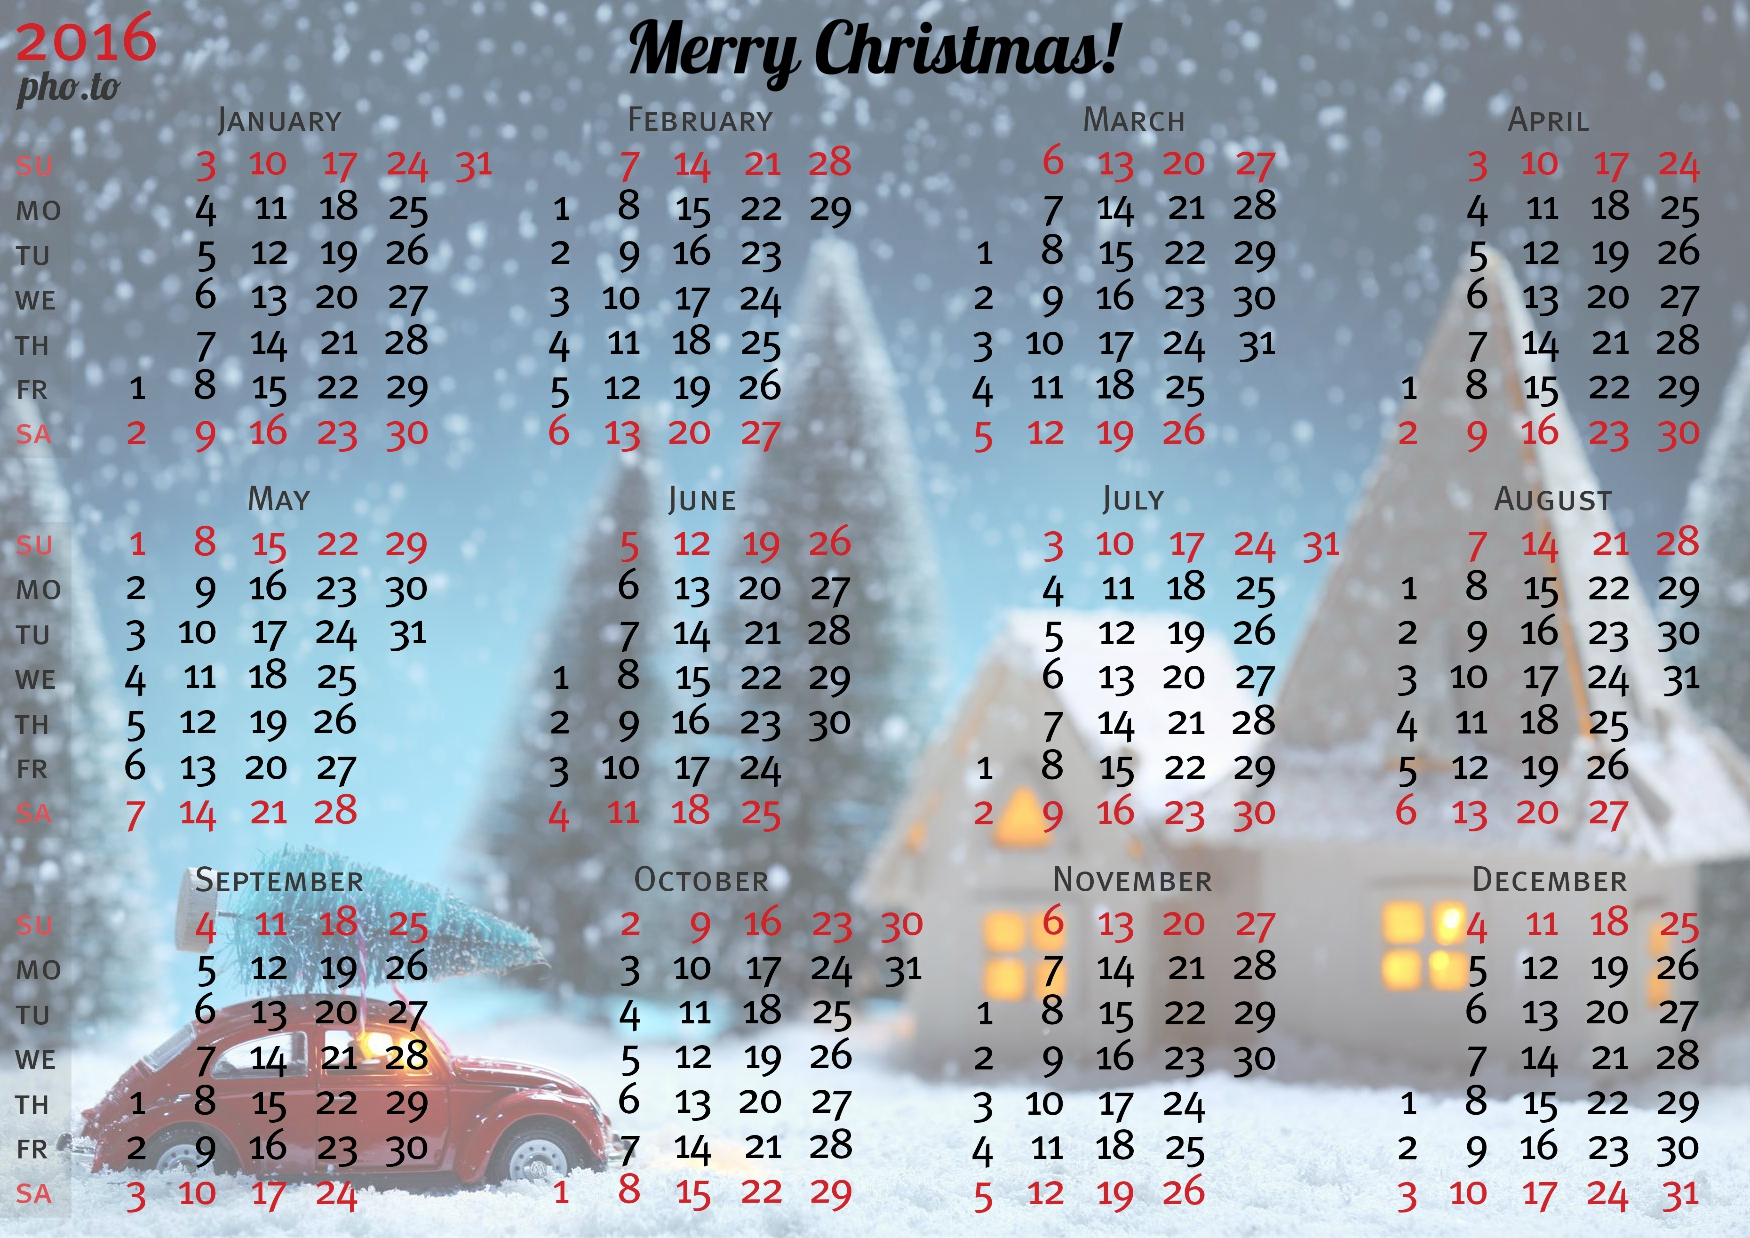 Customizable photo calendar template for Christmas and New Year 2016.